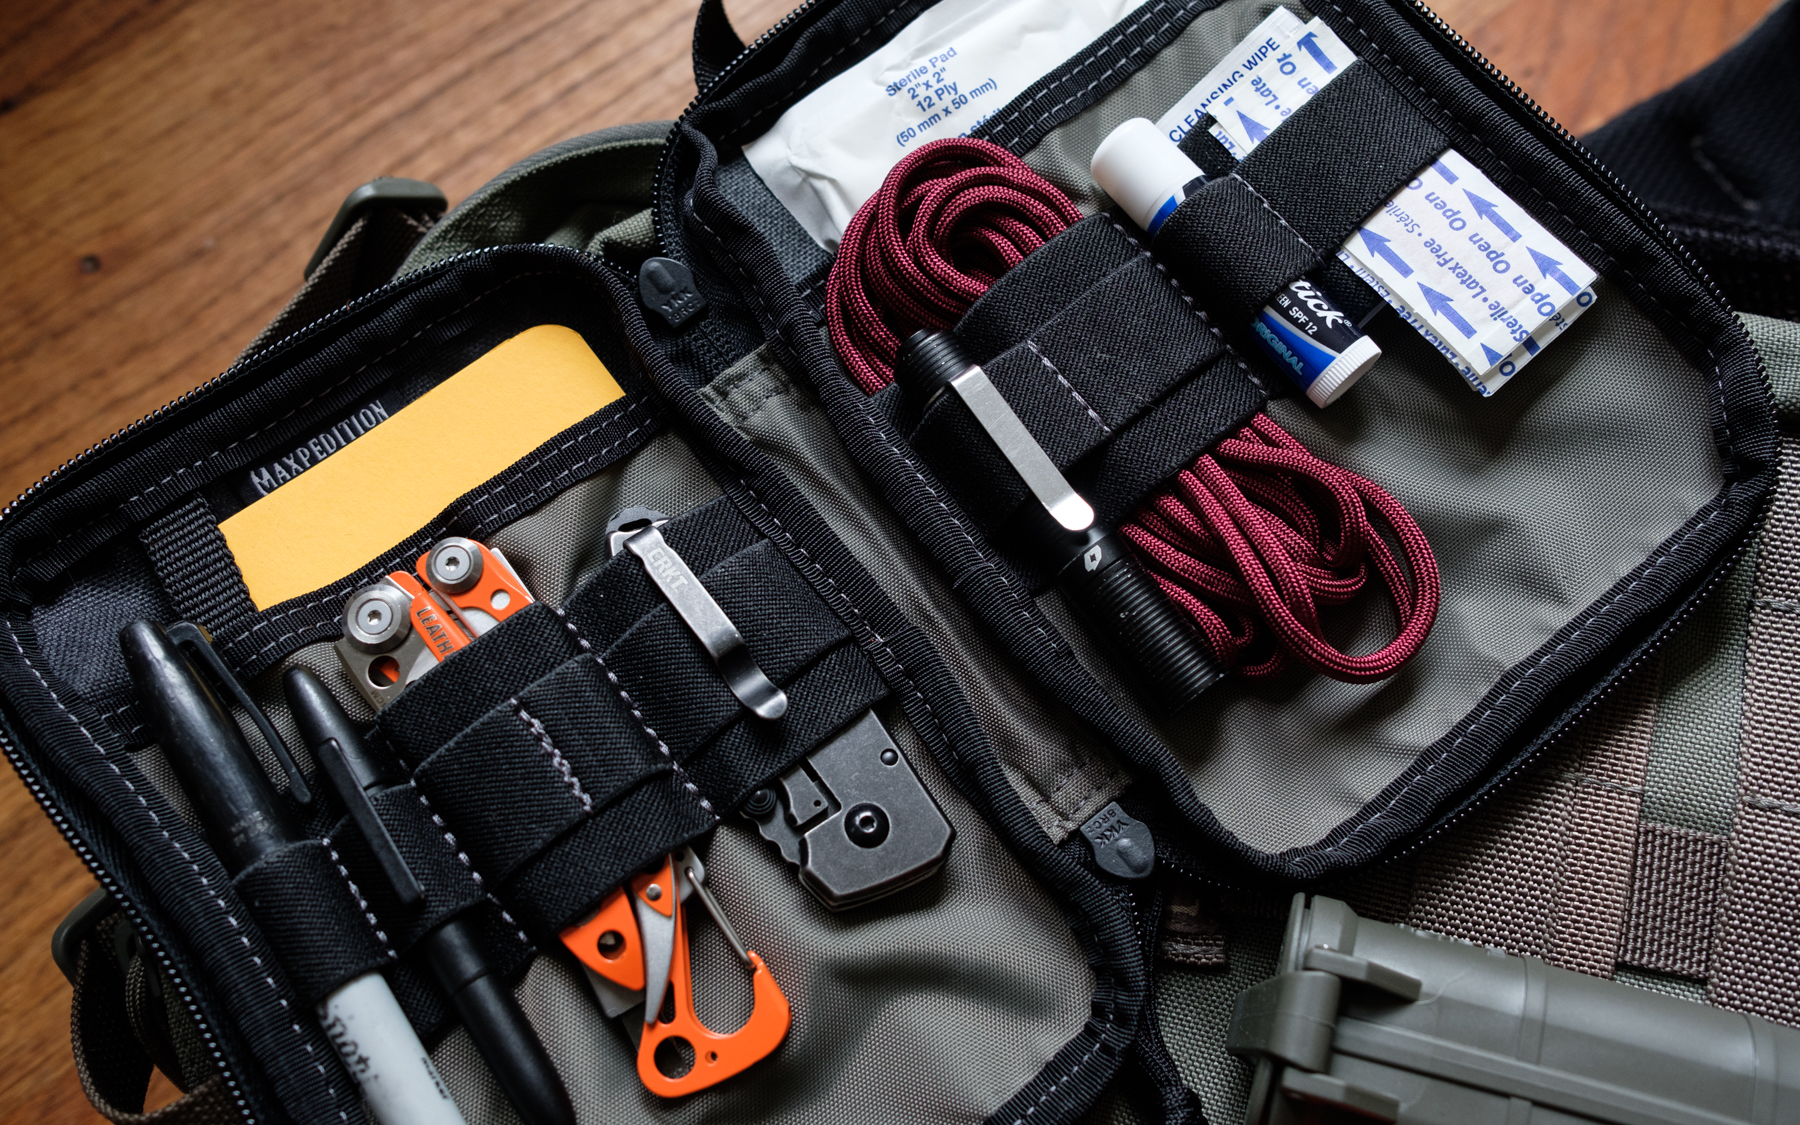 5 Specialized Pouch Setups for Your EDC